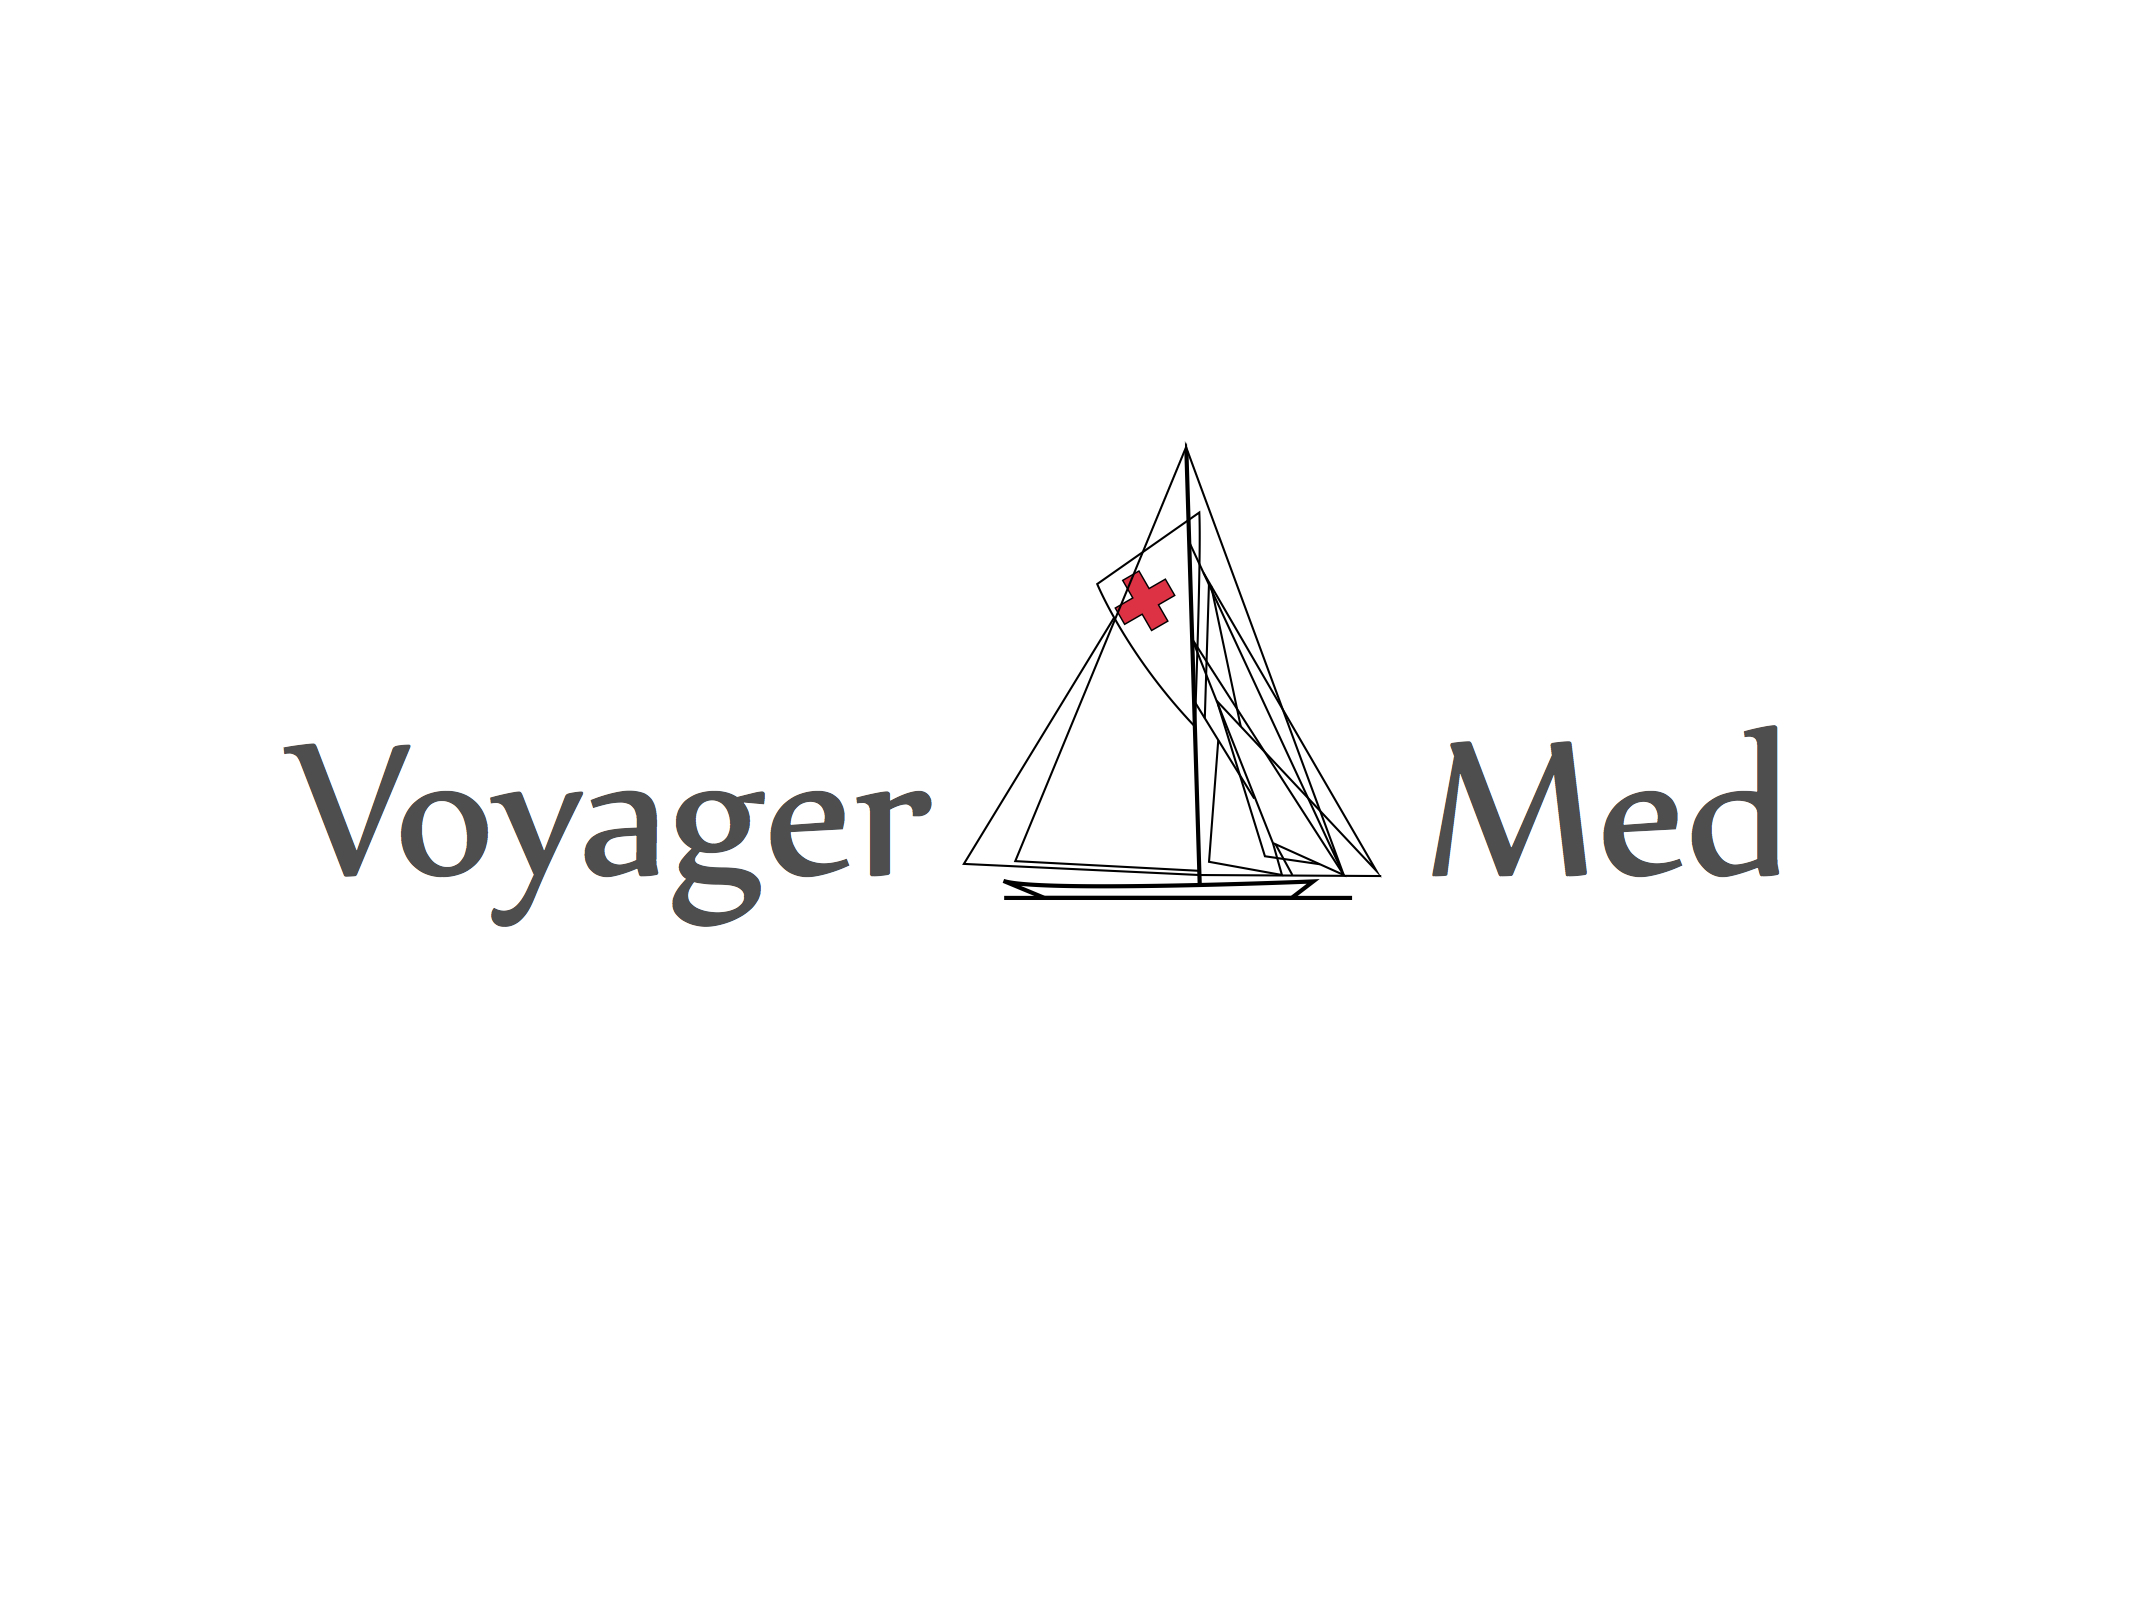 VoyagerMed